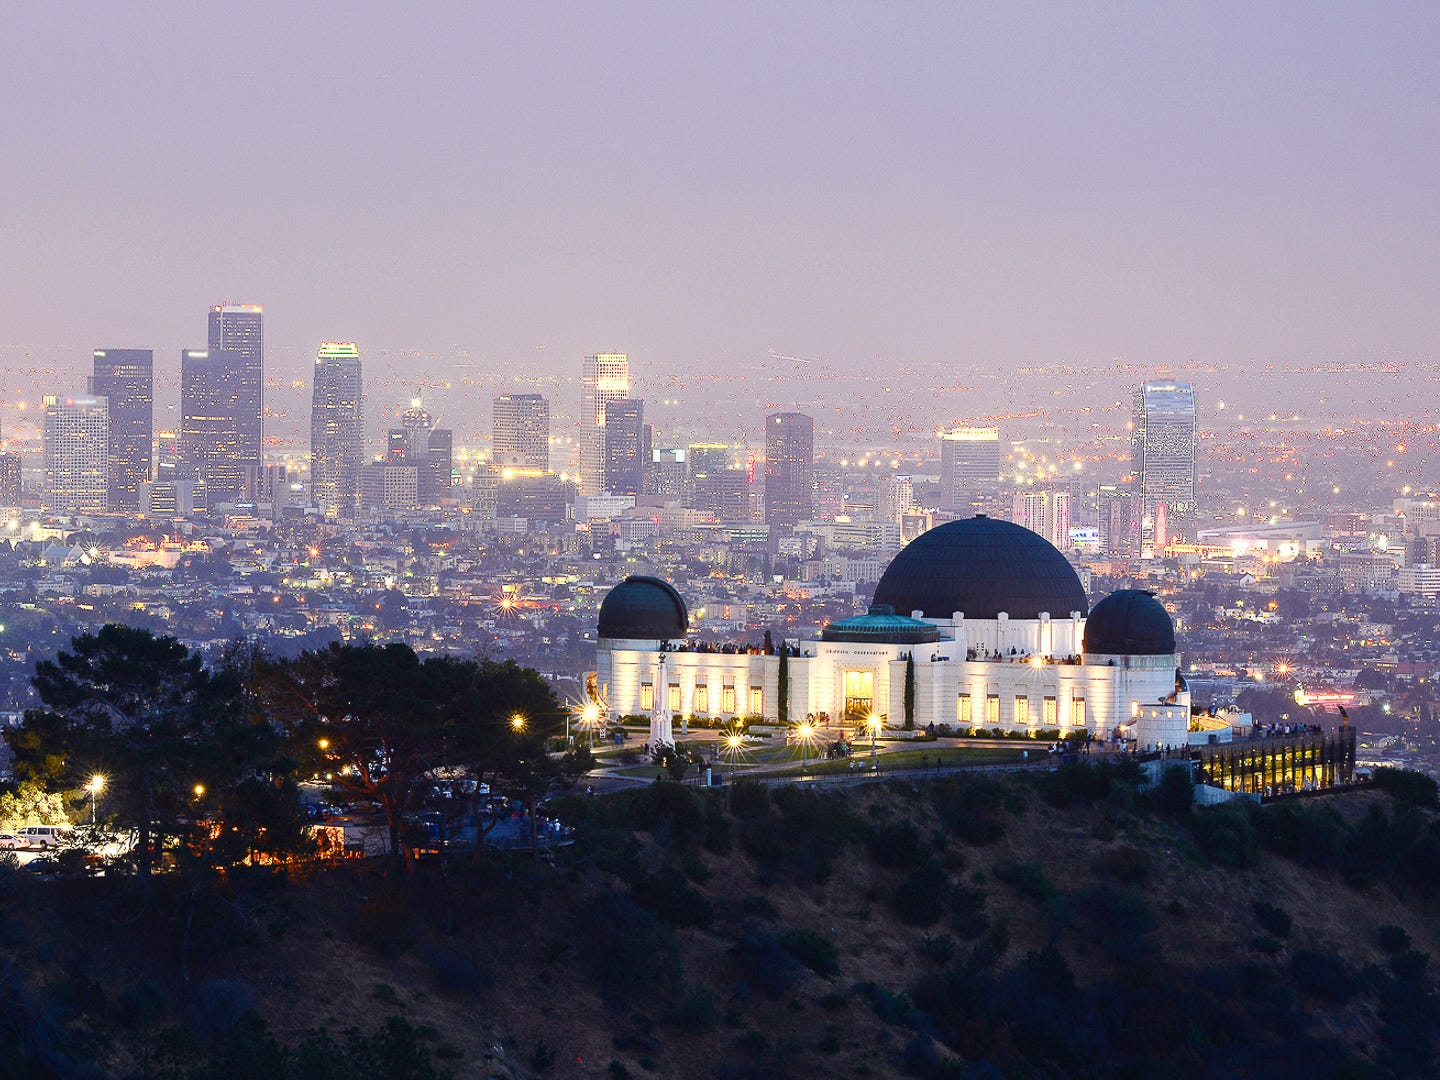 No. 7: Los Angeles. Thanksgiving trip cost: $1,435. Christmas trip cost: $1,452. Hotels in Los Angeles are expensive, especially during Thanksgiving, when the average hotel cost is the third-highest of all the cities in this ranking. But, you can save money on a trip to Los Angeles by visiting free famous landmarks, such as the Hollywood Walk of Fame, the Griffith Park Observatory, the Getty Center or Venice Beach.